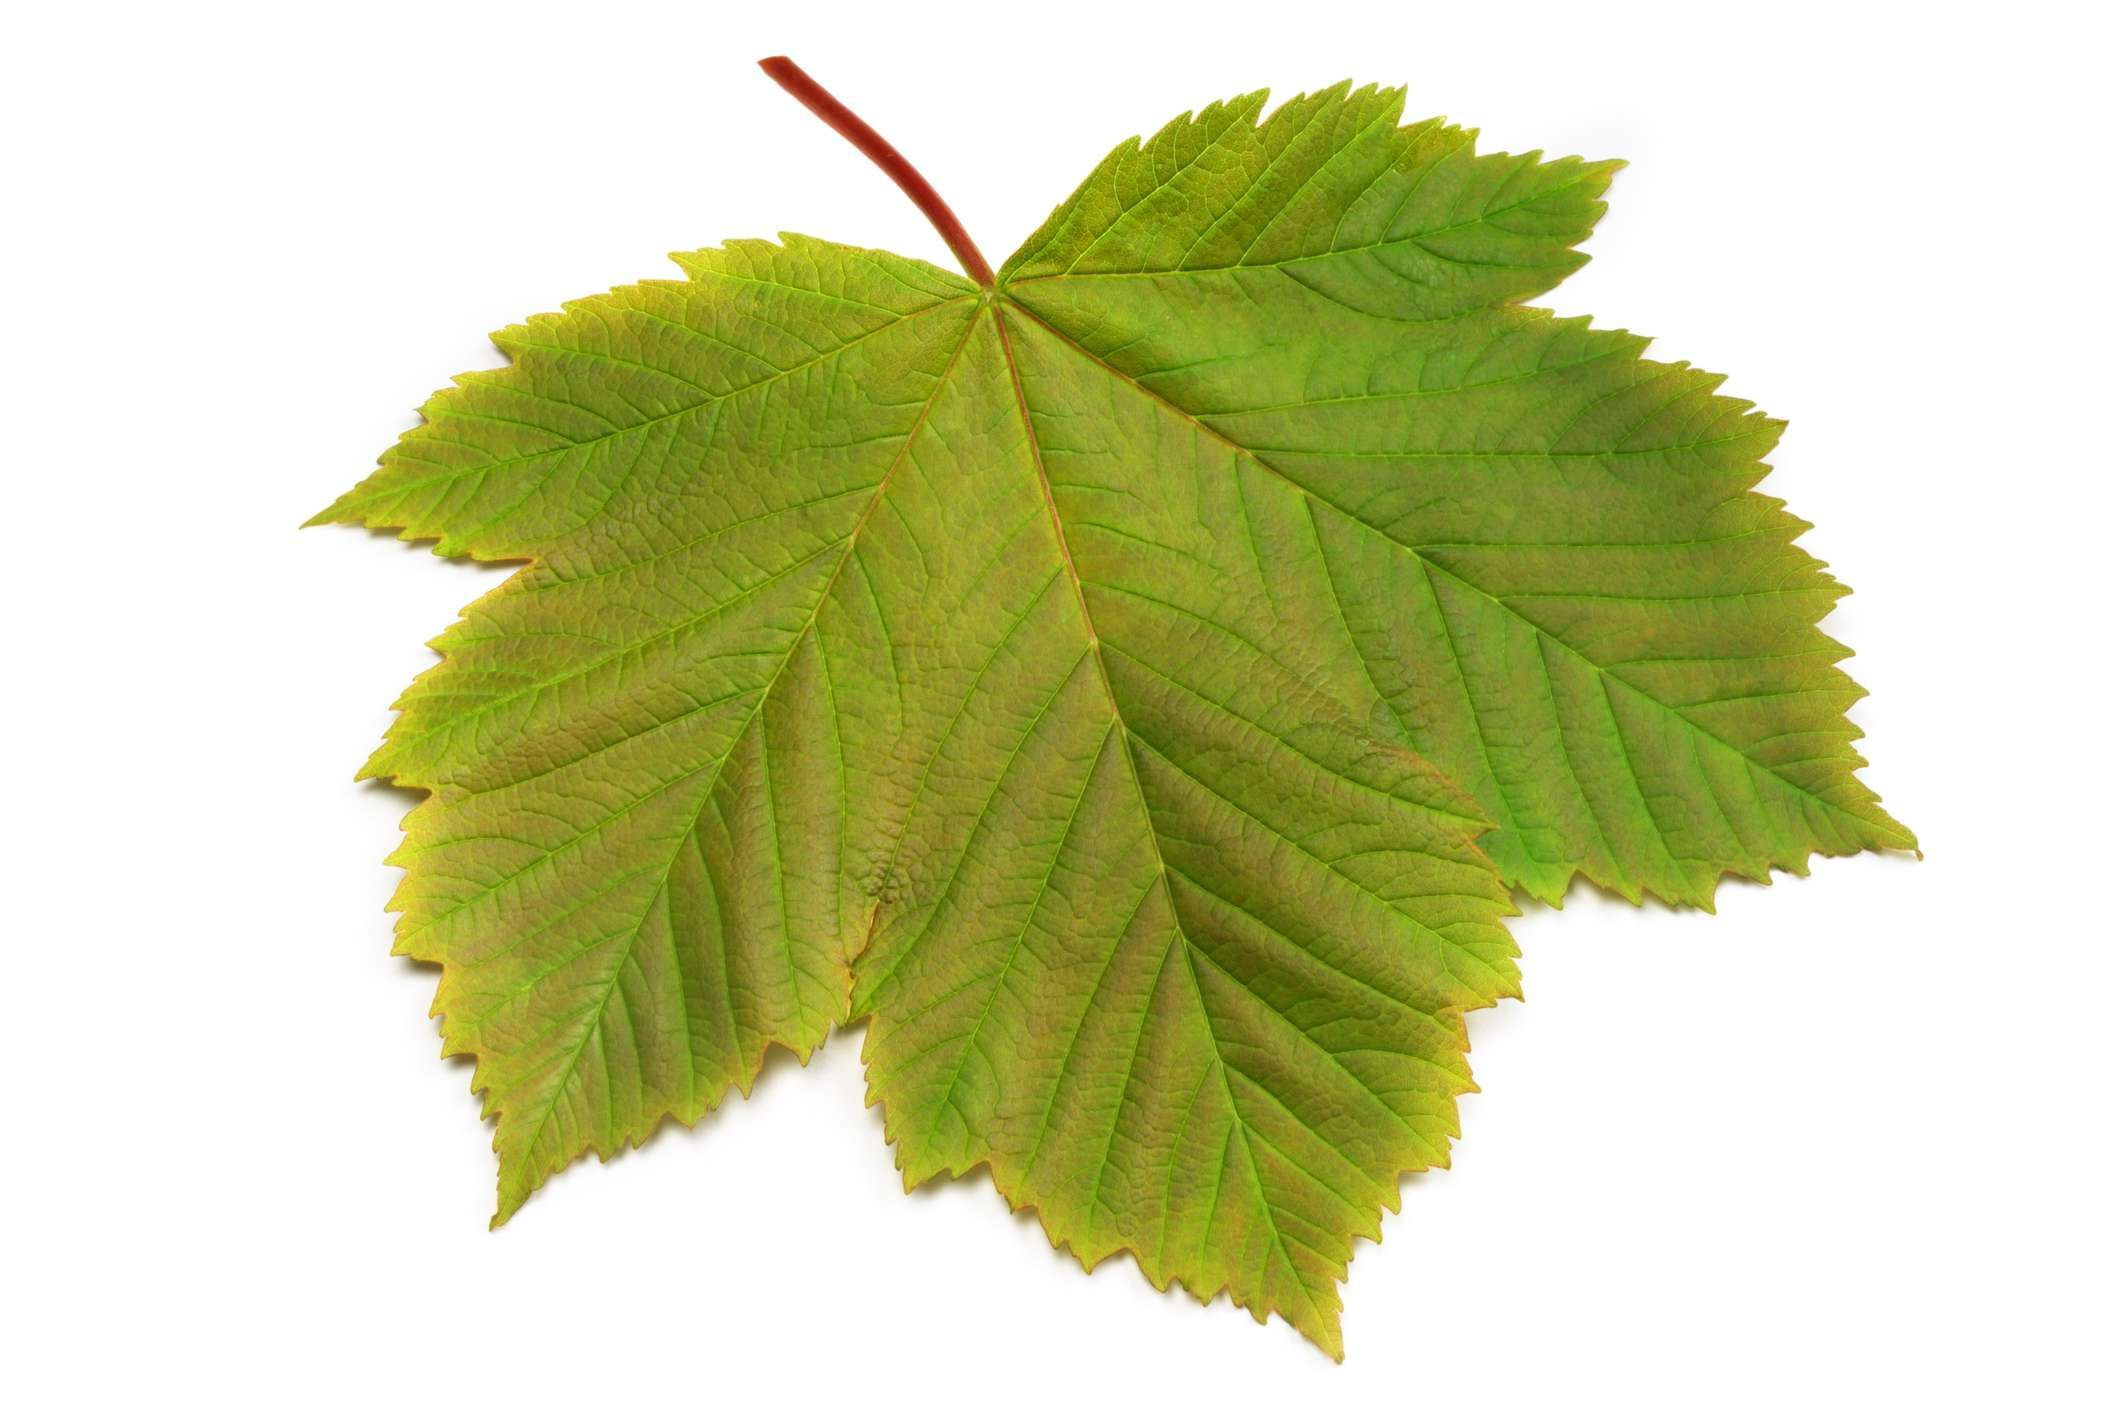 How To Identify Trees With Maple Like Leaves How To Identify